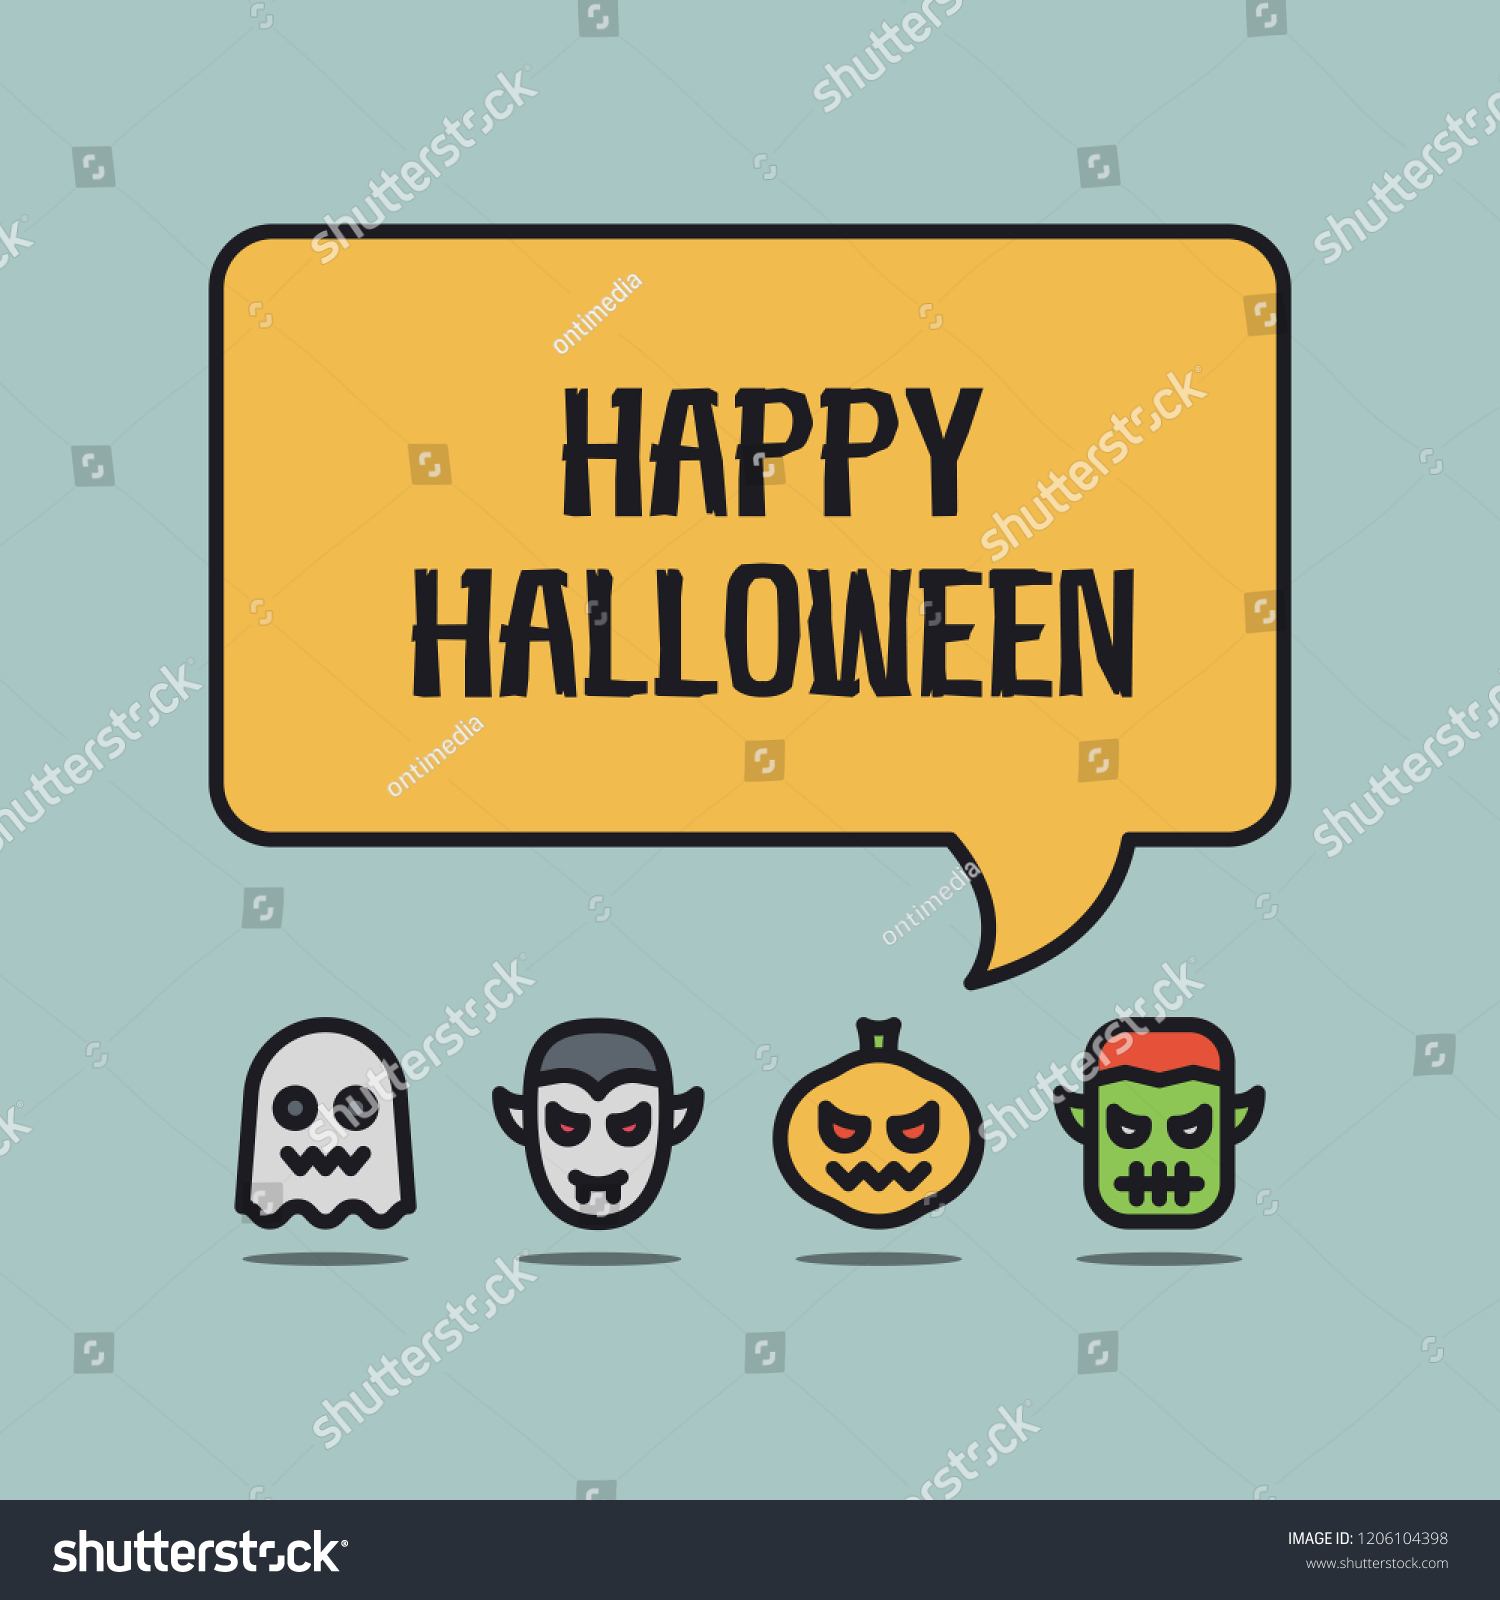 Halloween greeting from funny avatars